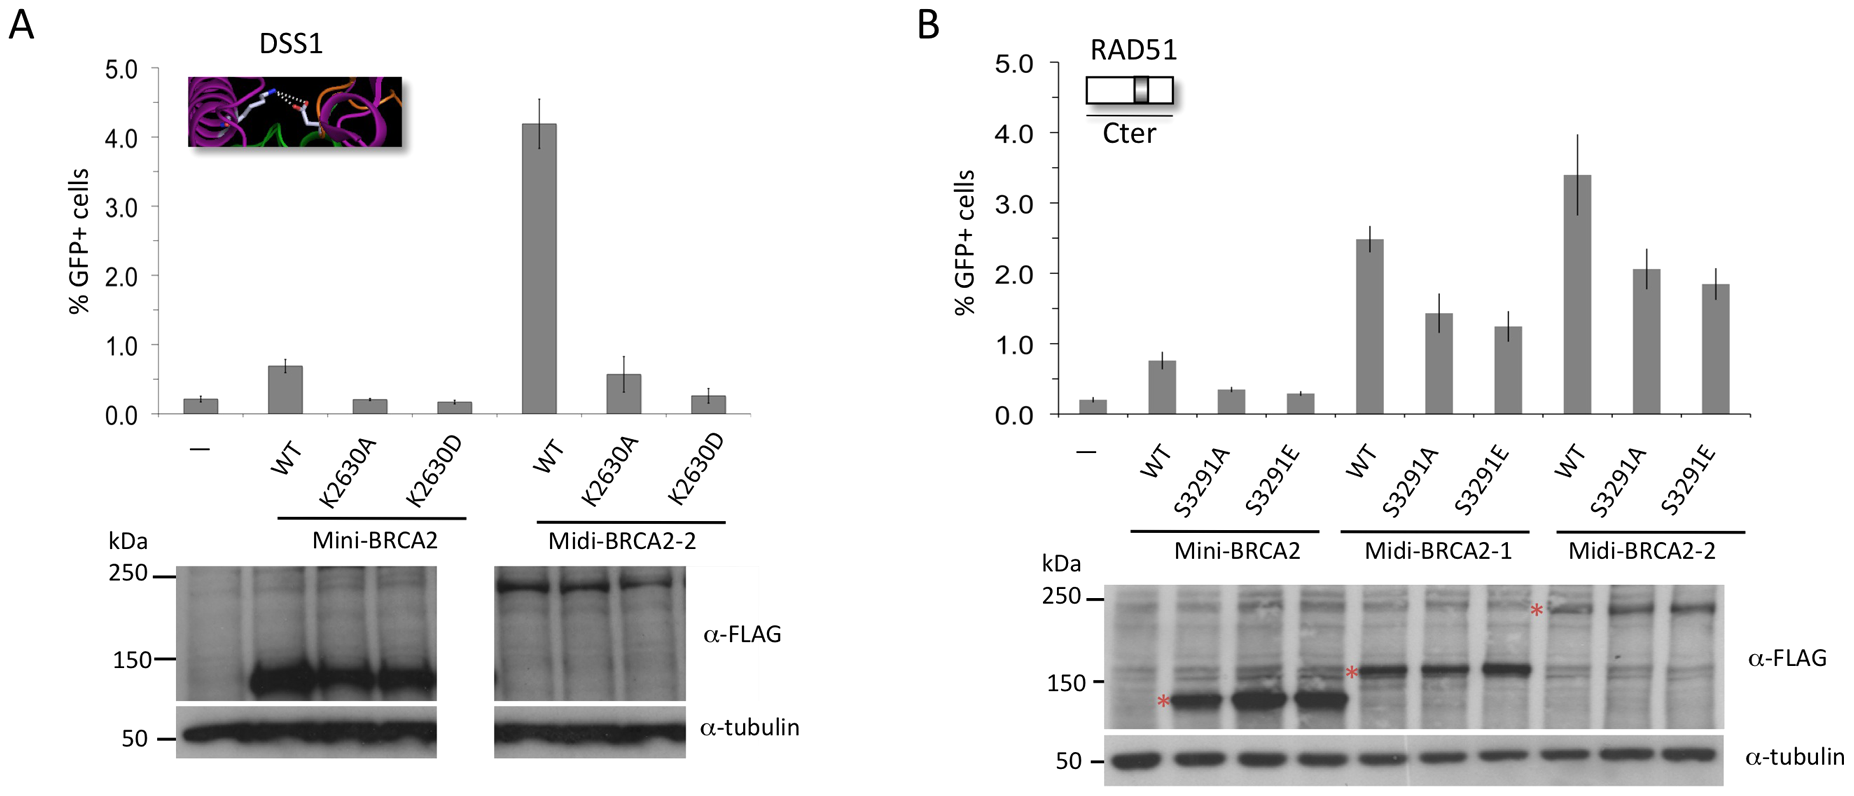 Interaction with PALB2 partially compensates for point mutations in the Cter that interfere with RAD51 binding, but cannot compensate for mutations that interfere with DSS1 binding.